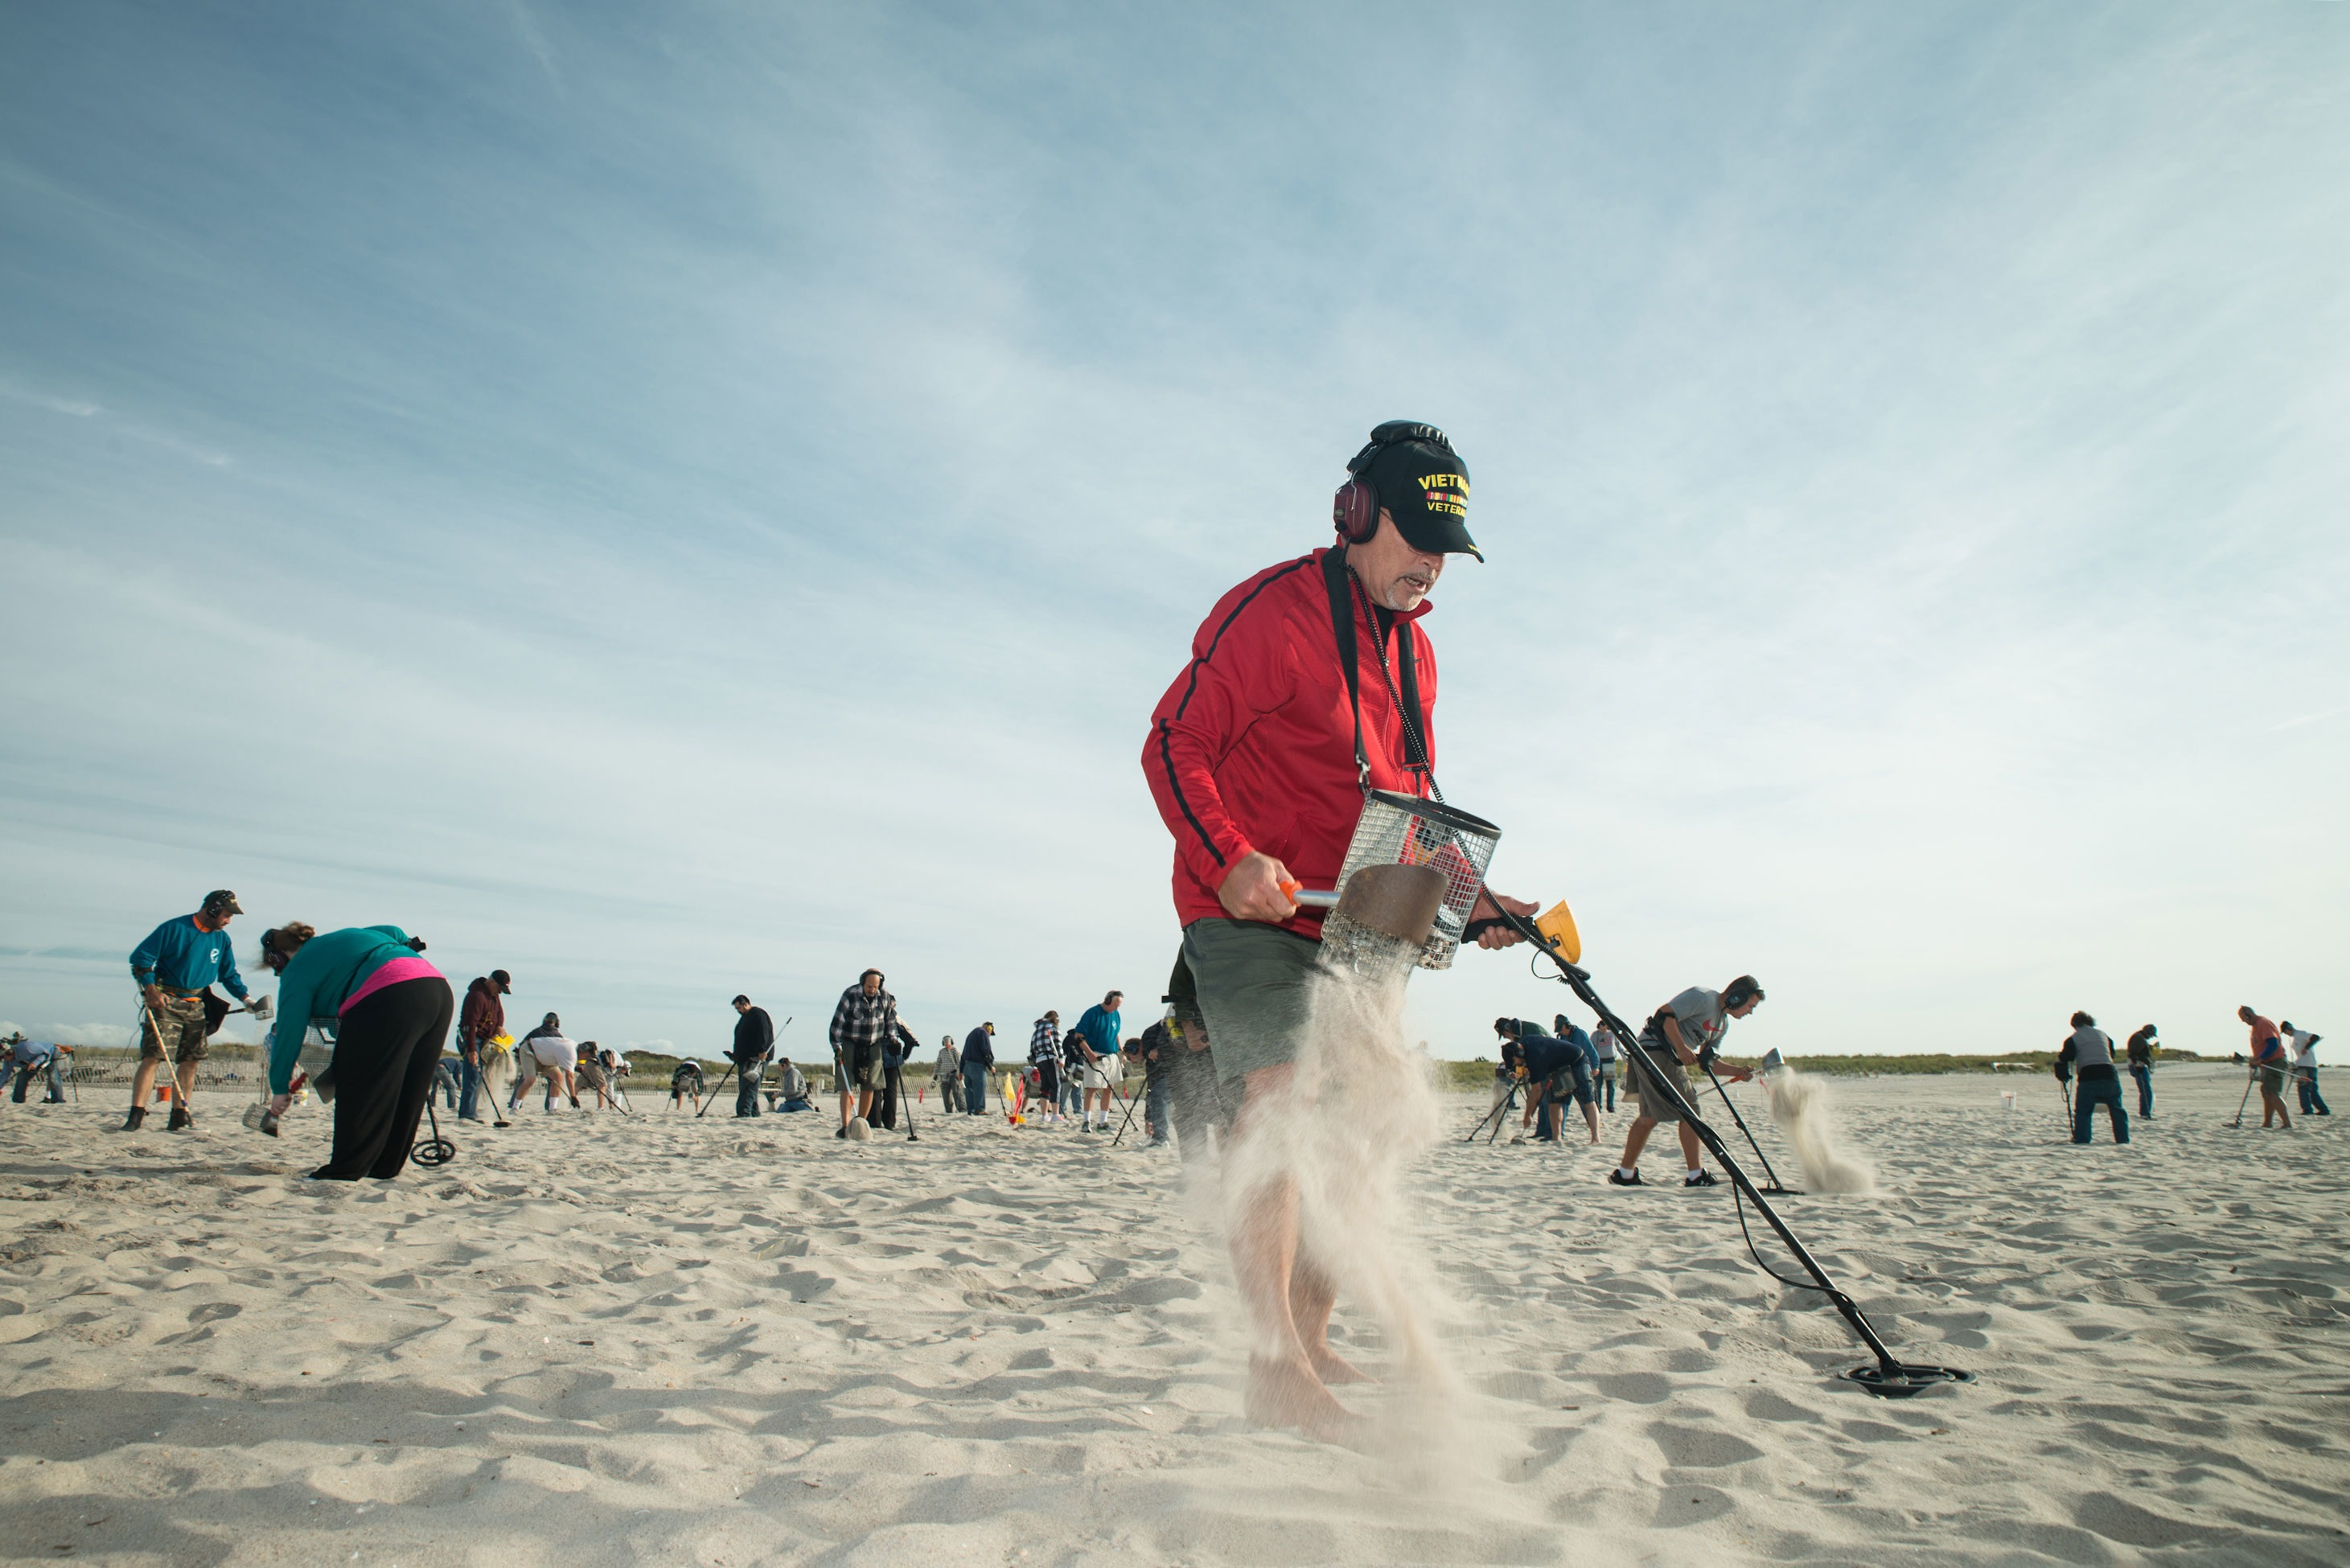 Digging for glory with Long Island's beachcombers